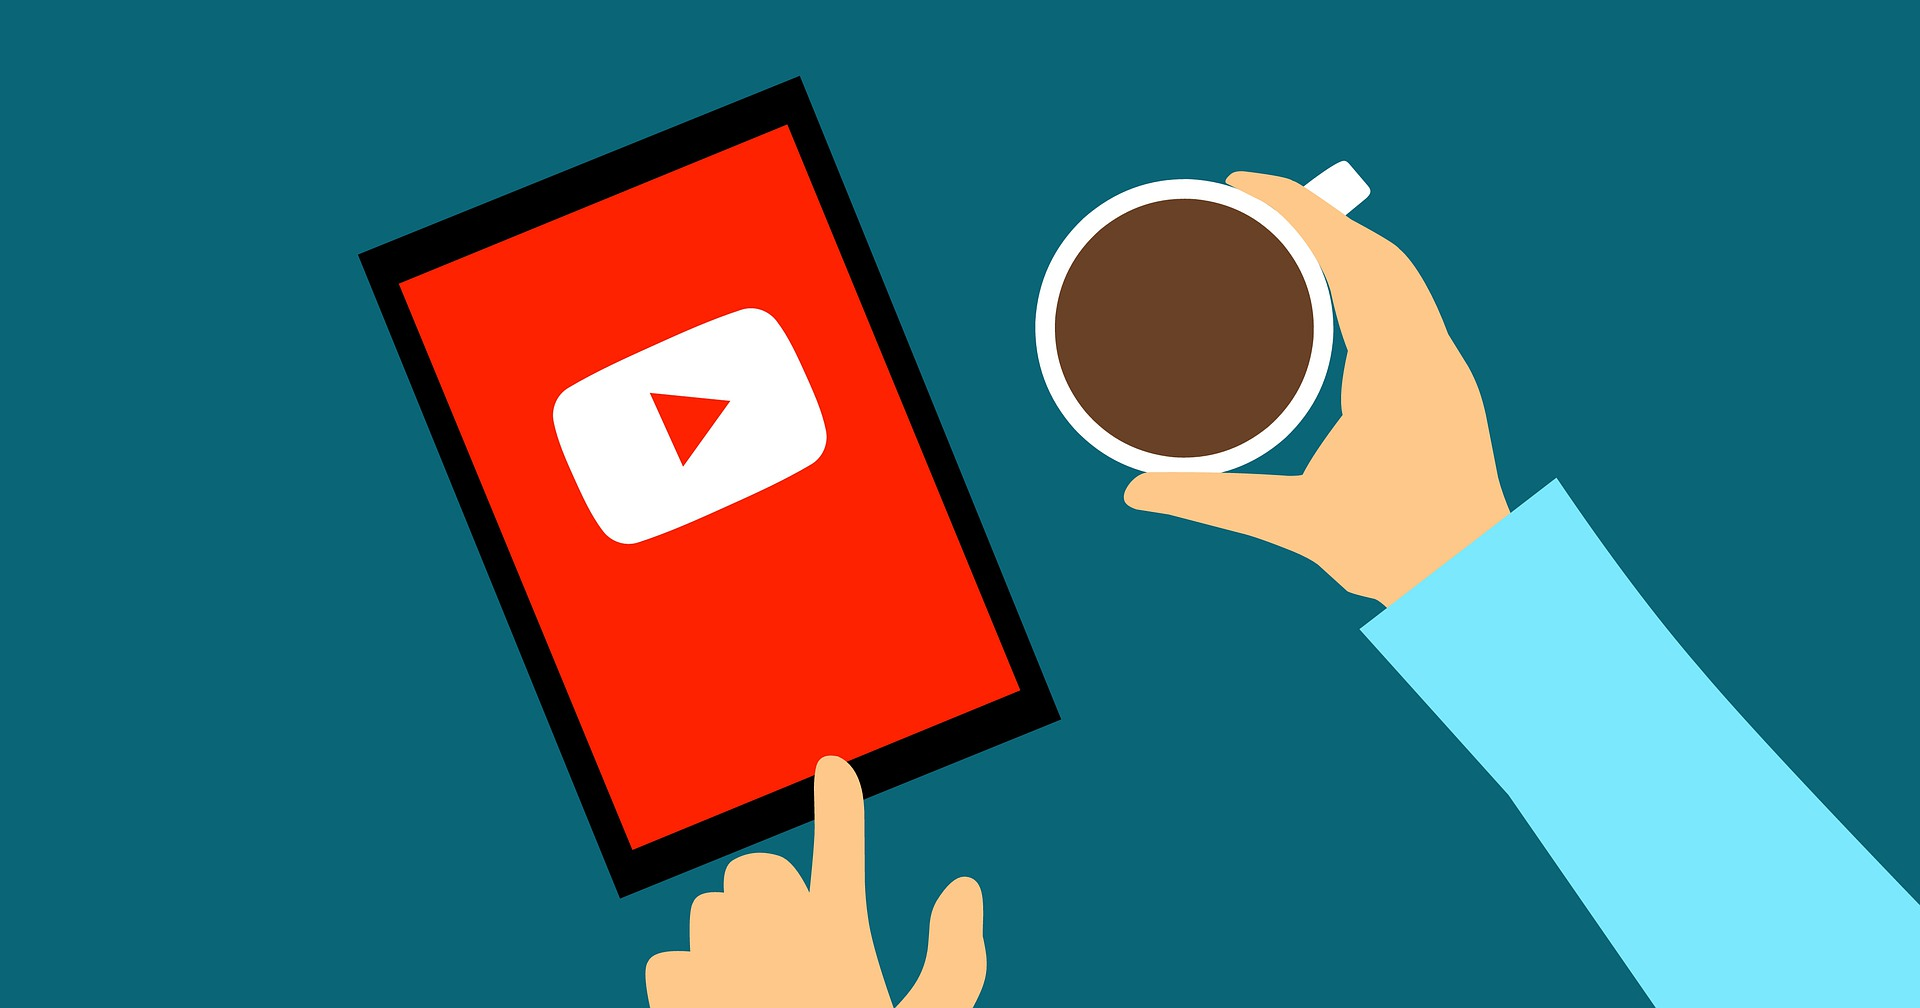 Illustrated graphic of the YouTube app on a tablet with a person holding a cup of coffee, representing the popularity of the platform on mobile devices